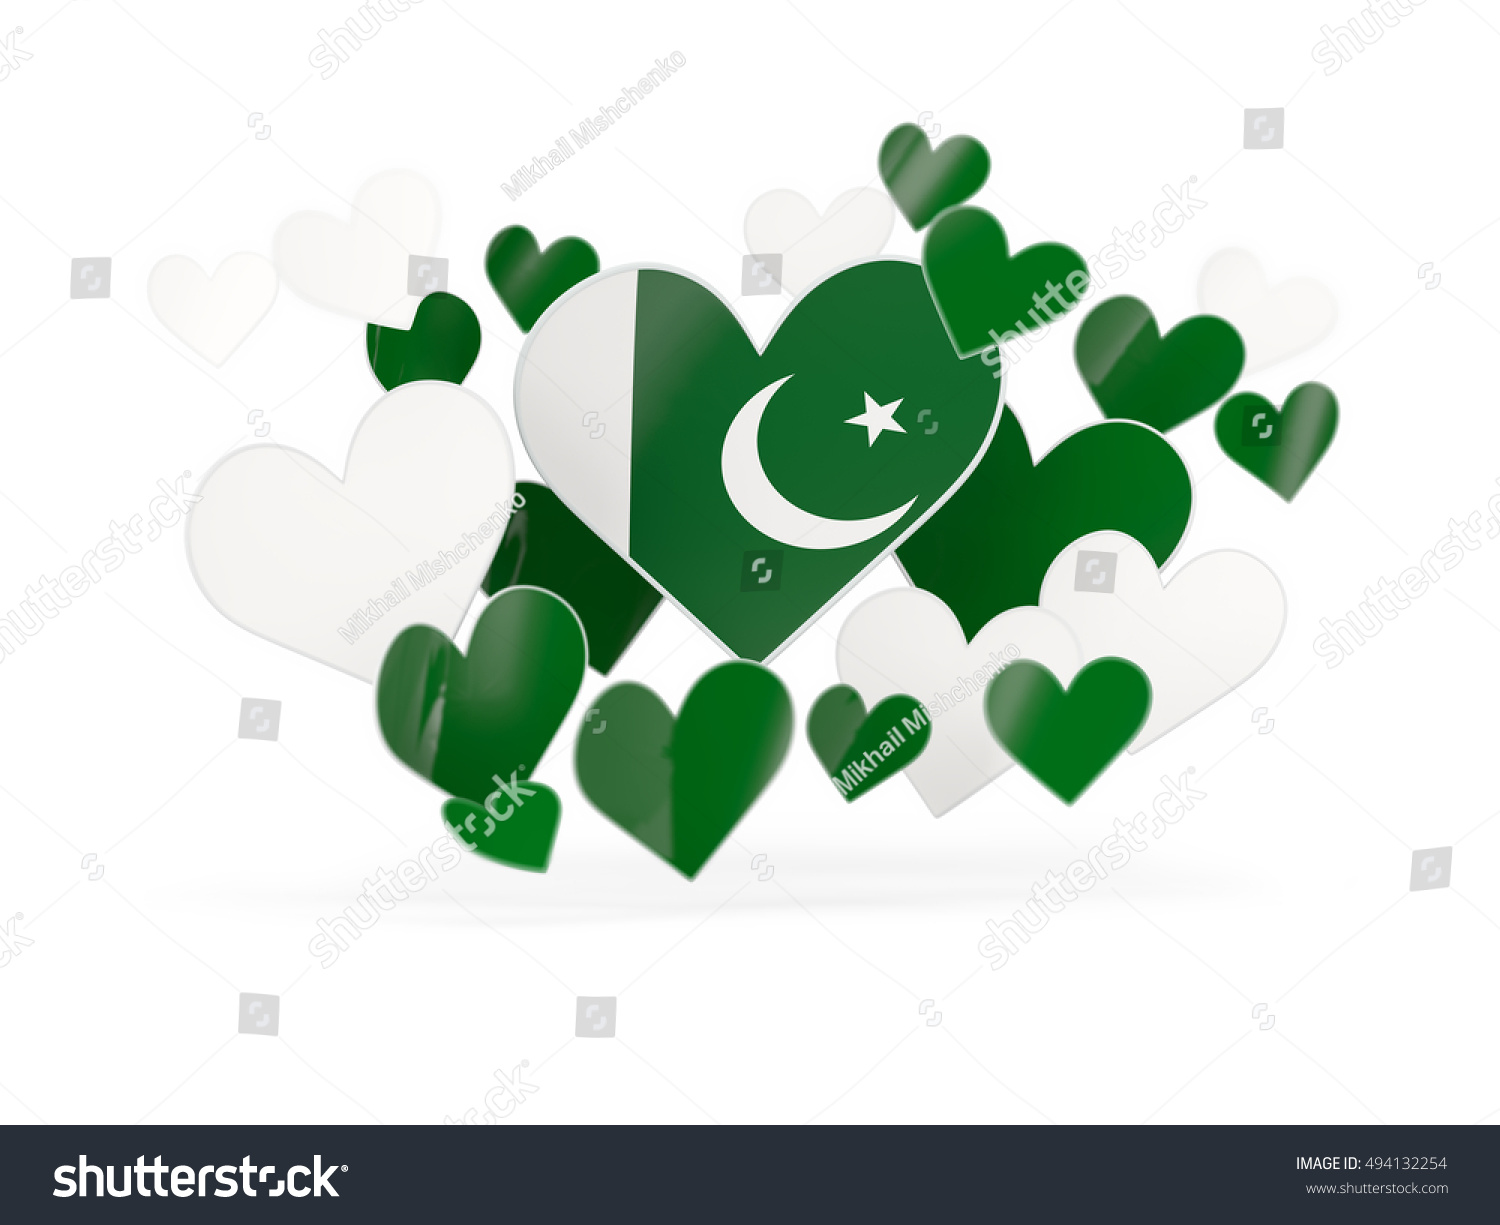 Flag of pakistan heart shaped stickers on white 3d illustration